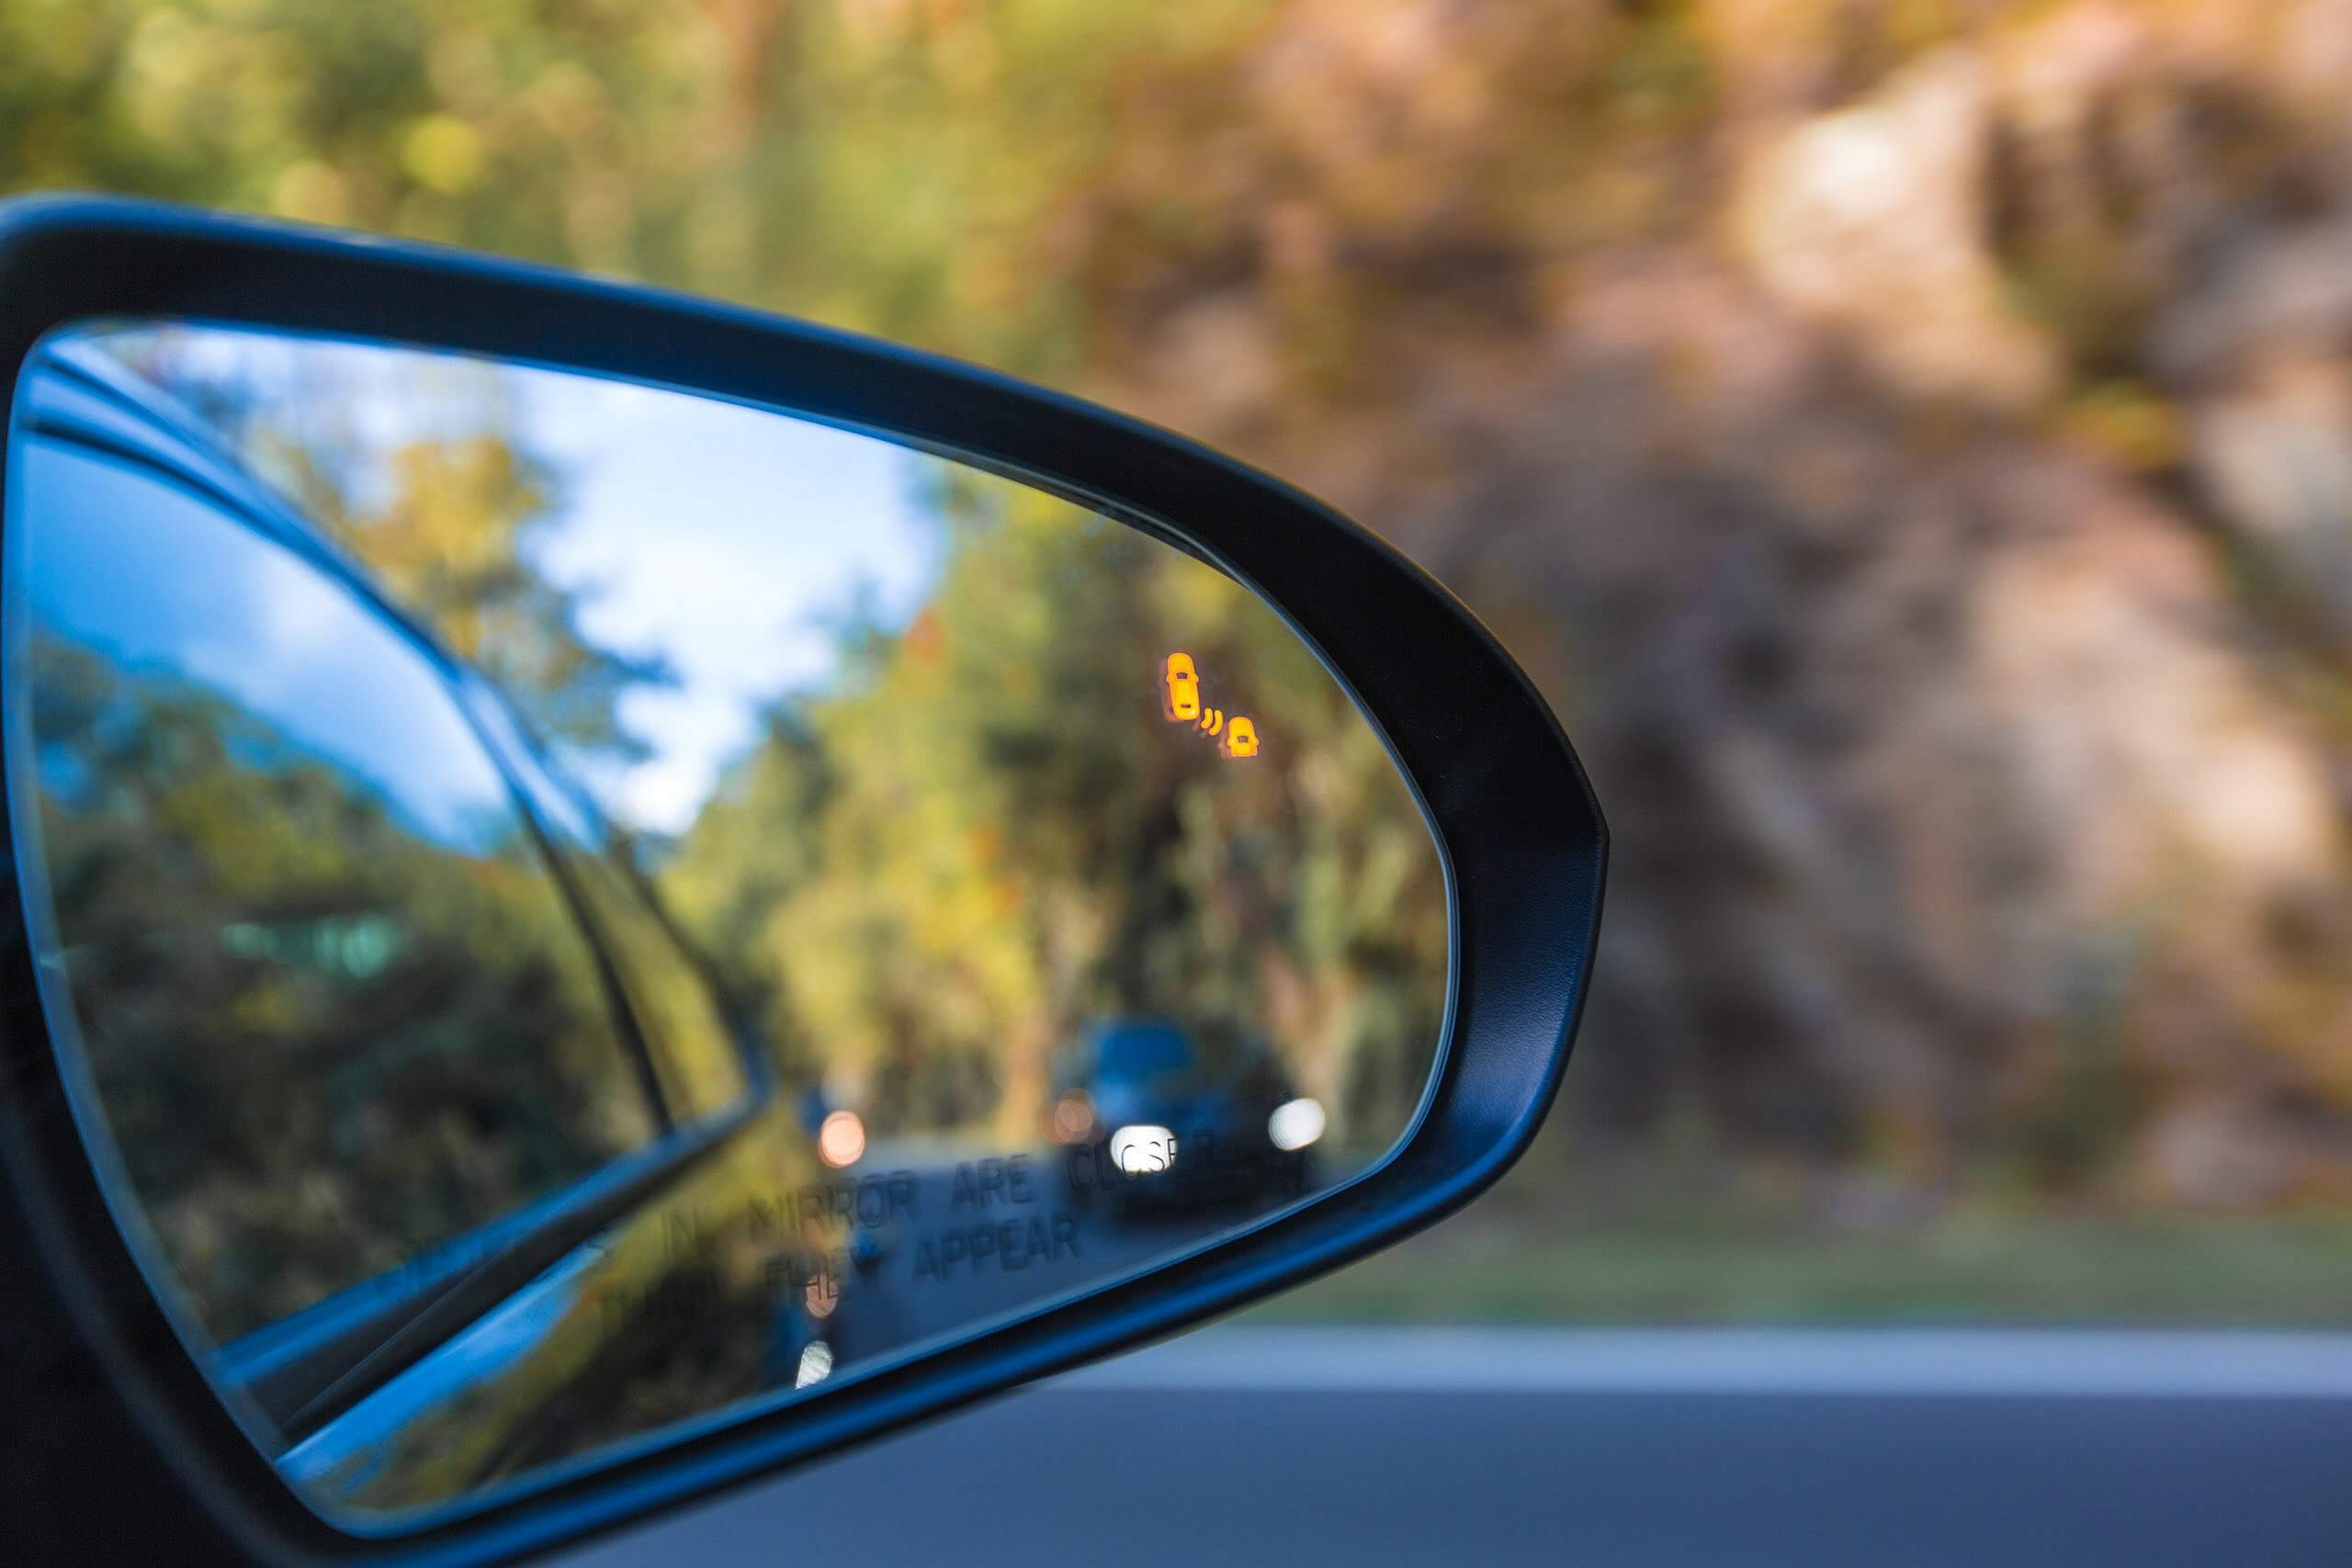 Blindspot warning signal in rearview mirror.